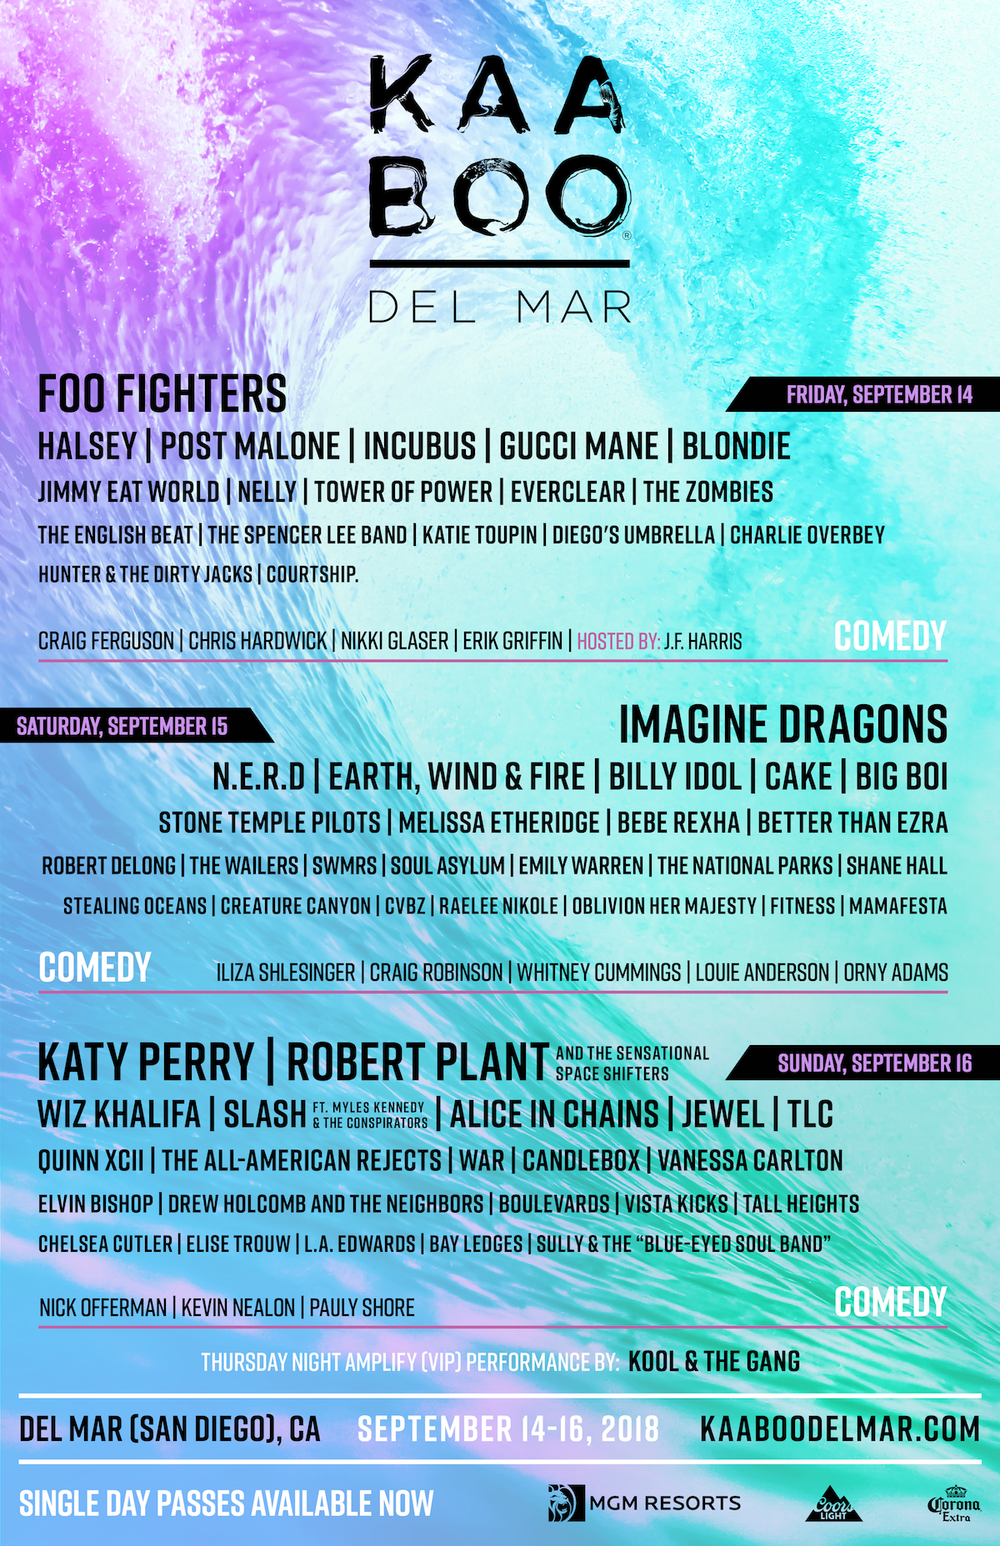 Kaaboo Del Mar Announces Daily Artist Lineup And Single Day Pass